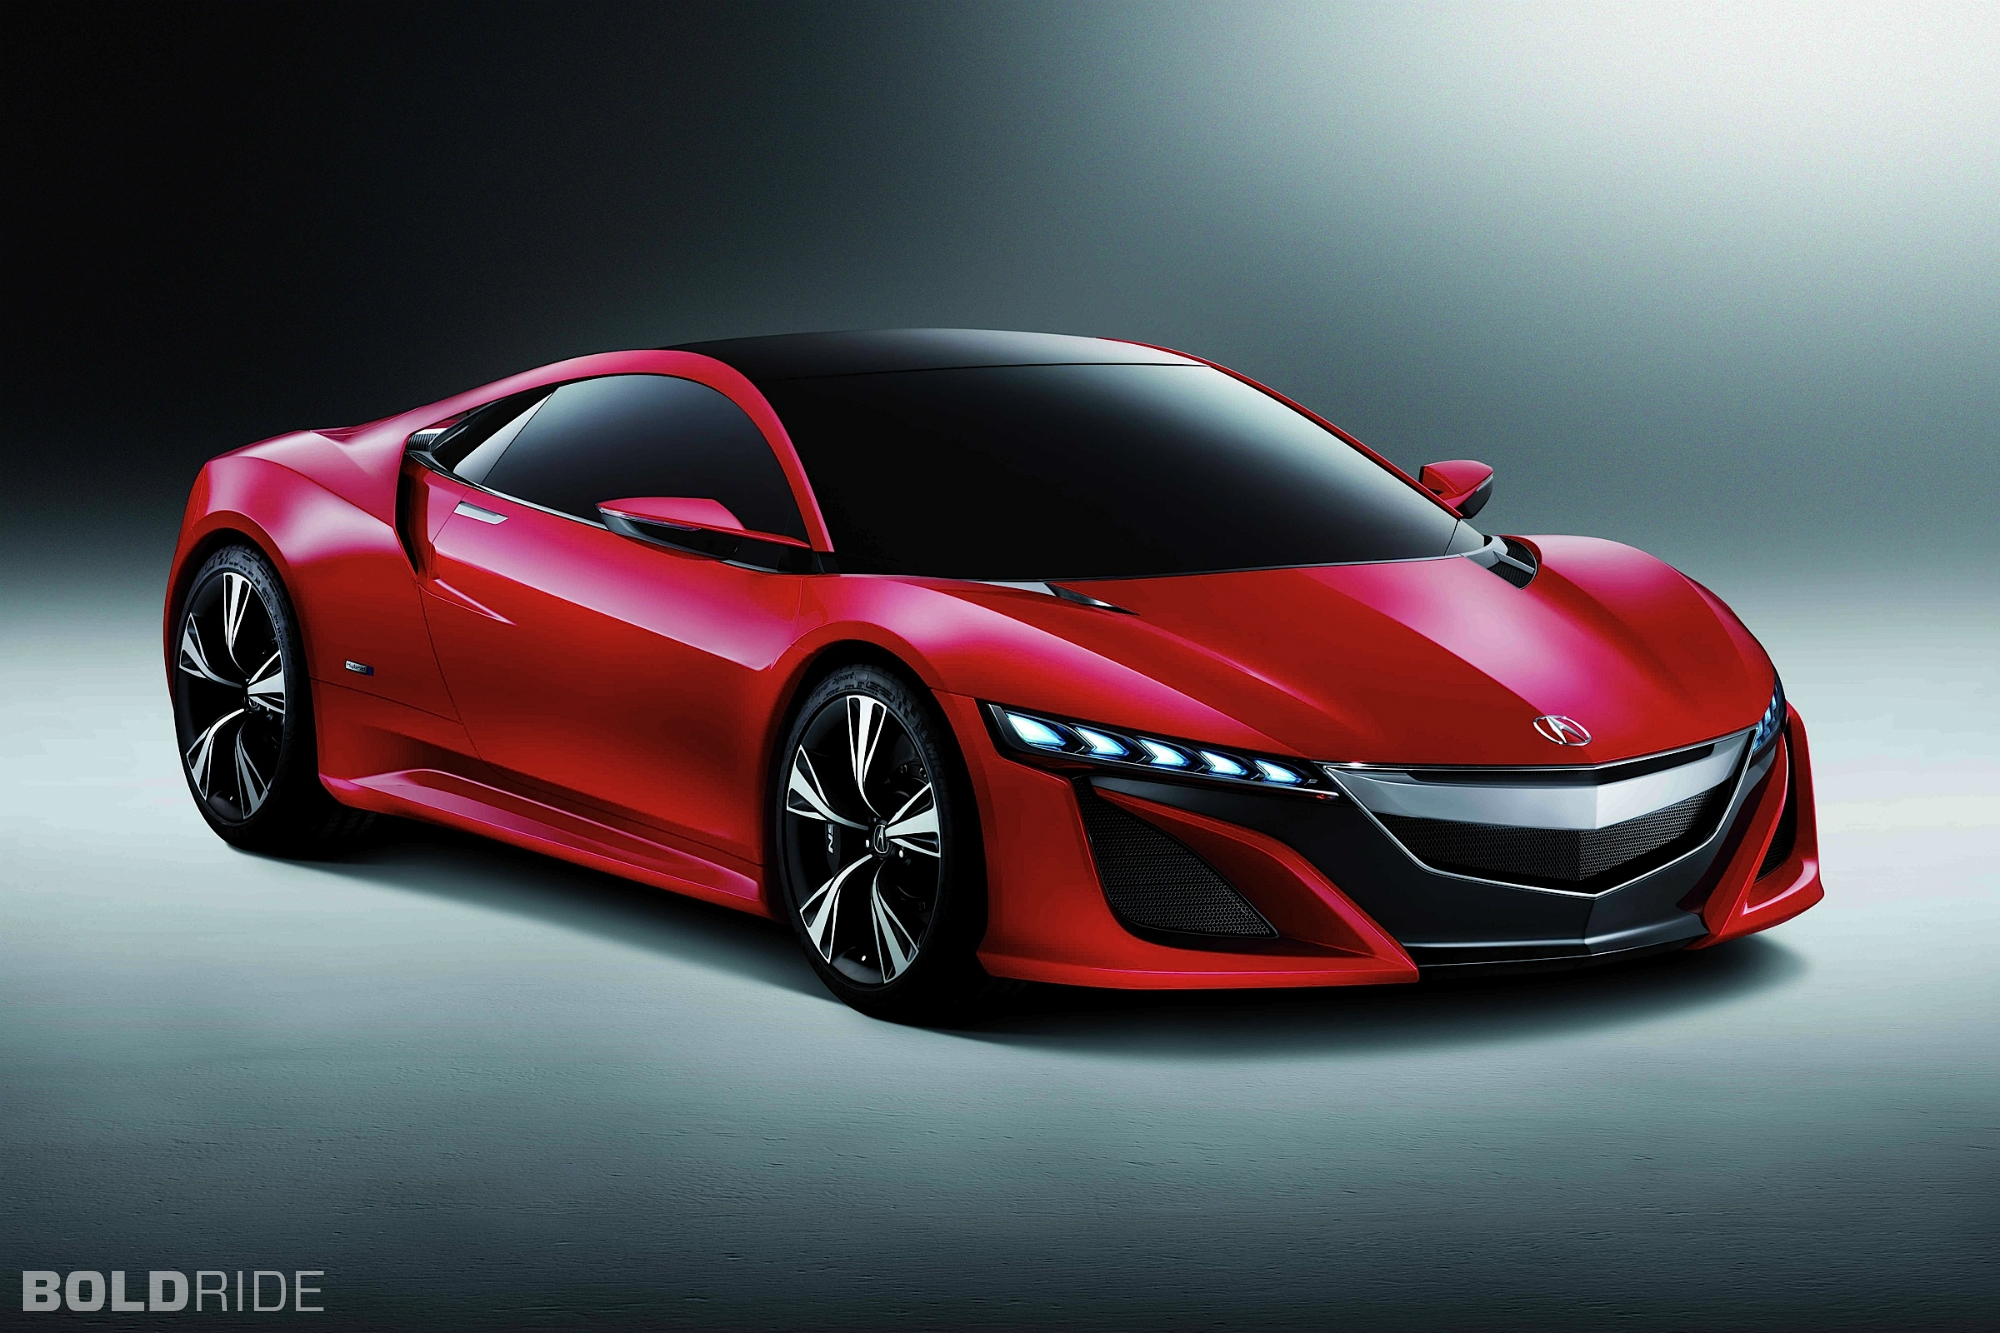 2012 Acura NSX Concept photo - 12